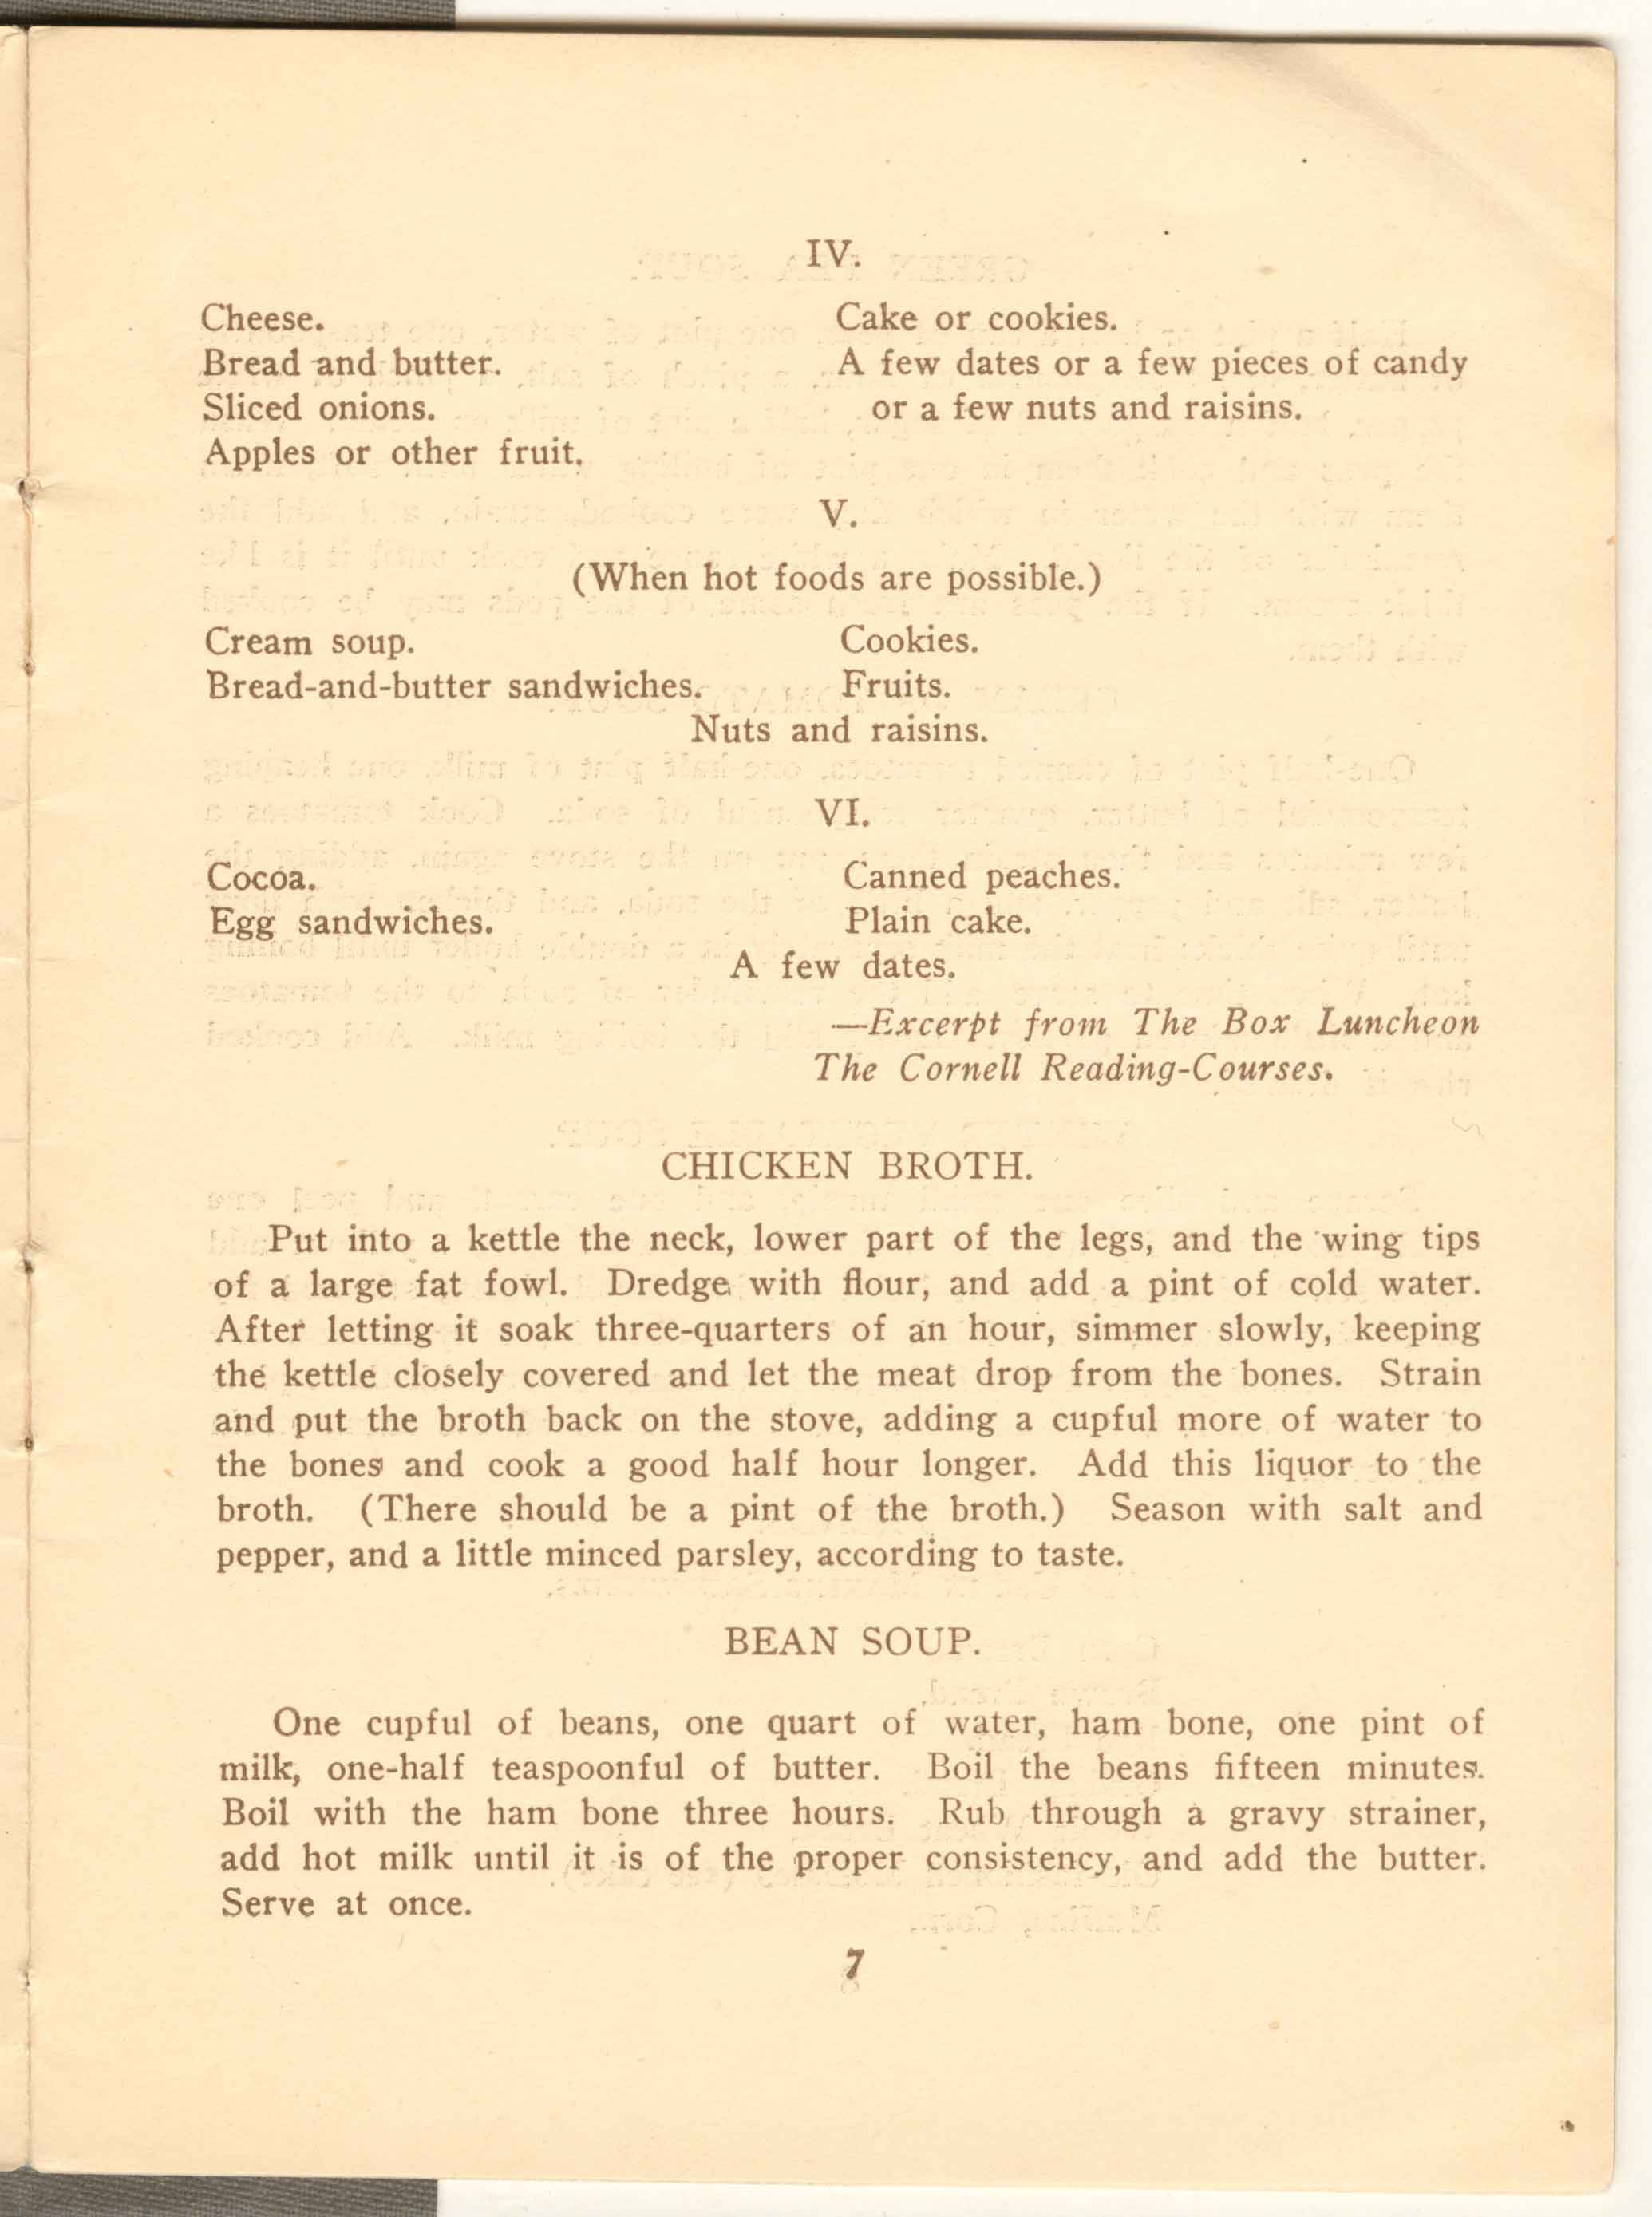 Page from a Keep Well Leaflet from the New York City Department of Health published circa 1920 titled Simple Wholesome Lunches for Working People.